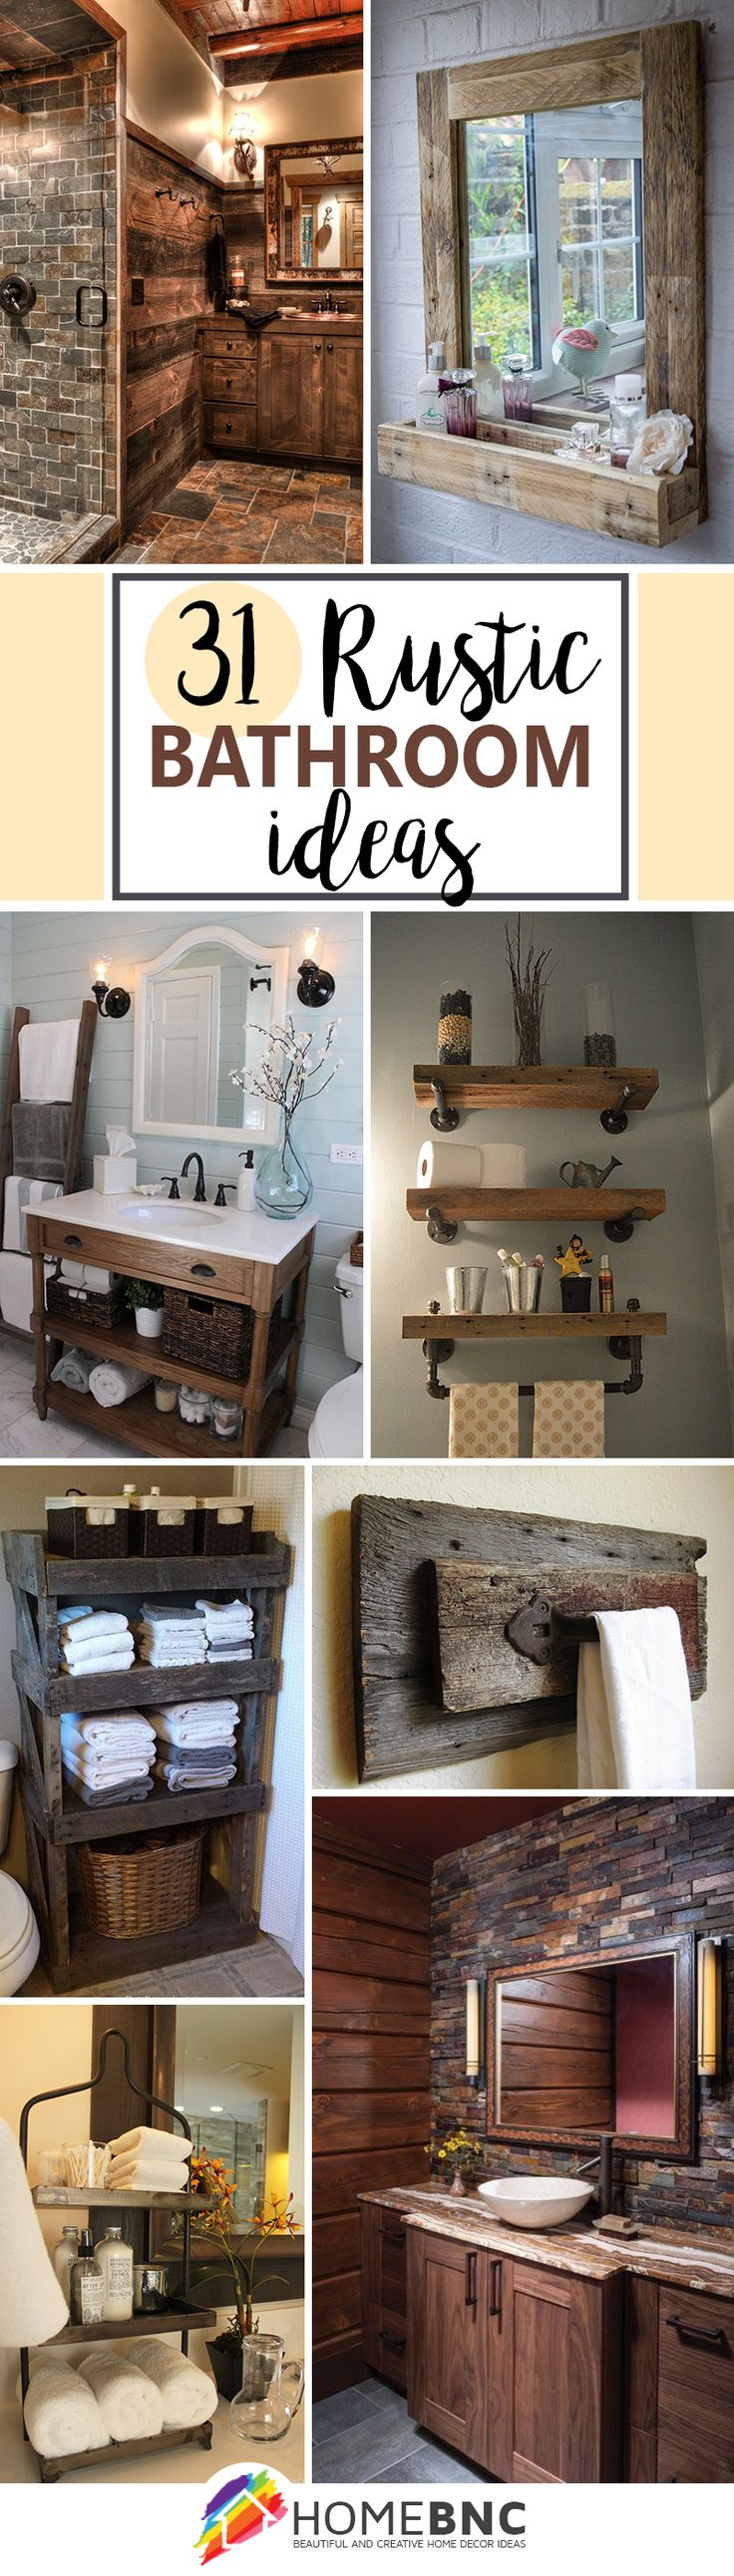 Bathroom Decor 17 Best Ideas About Rustic Bathroom Decor On Pinterest Half Bath